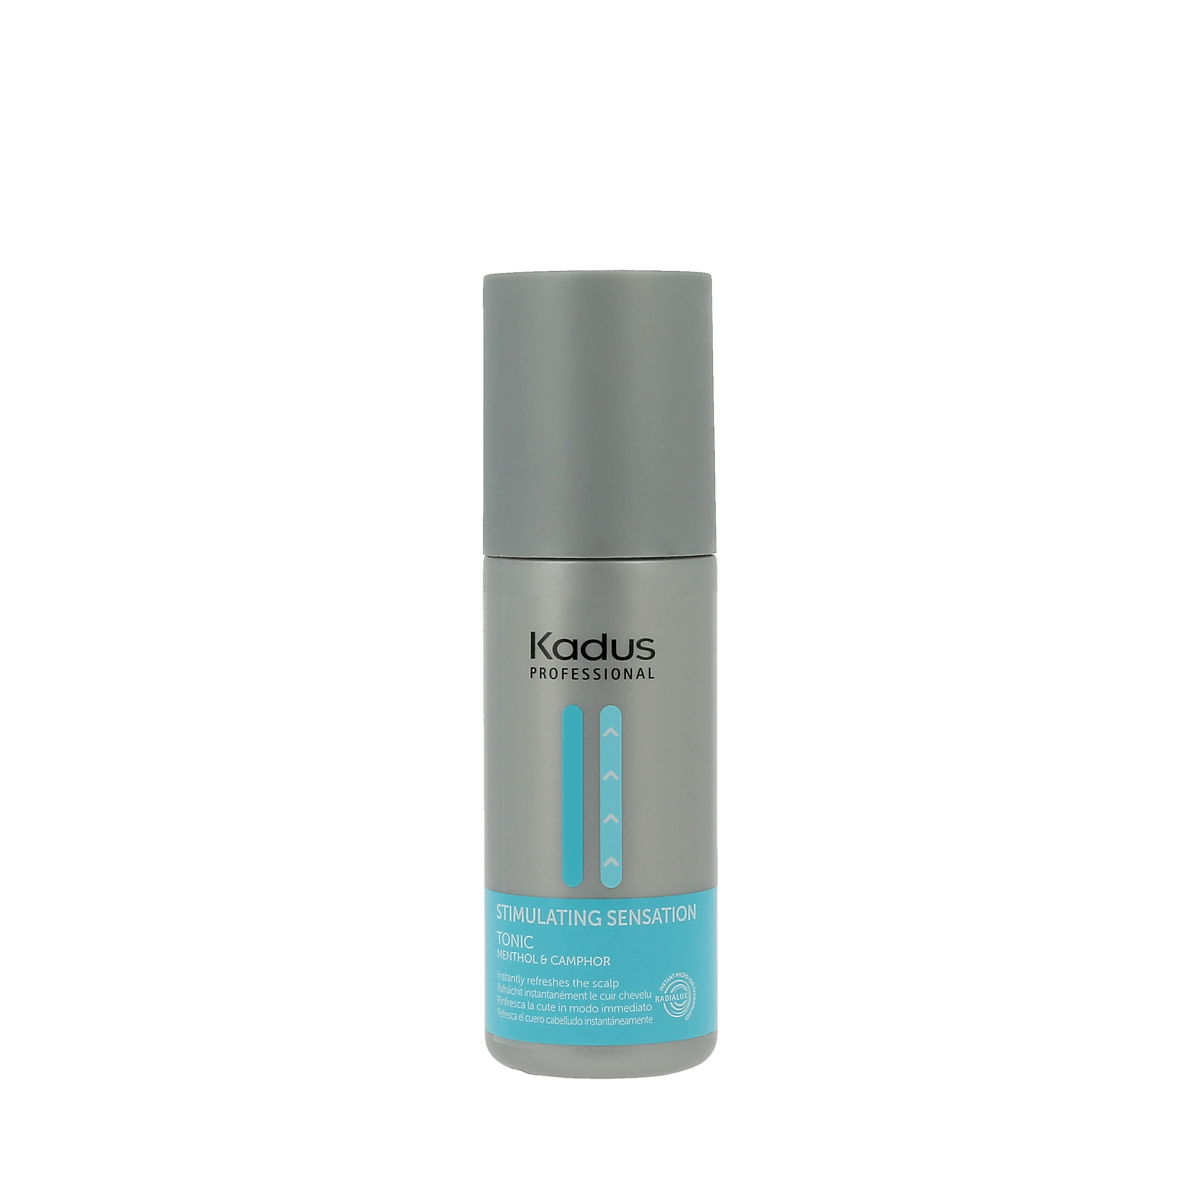 Buy Kadus Professional Stimulating Sensation Tonic 150ml Salon Wholesale